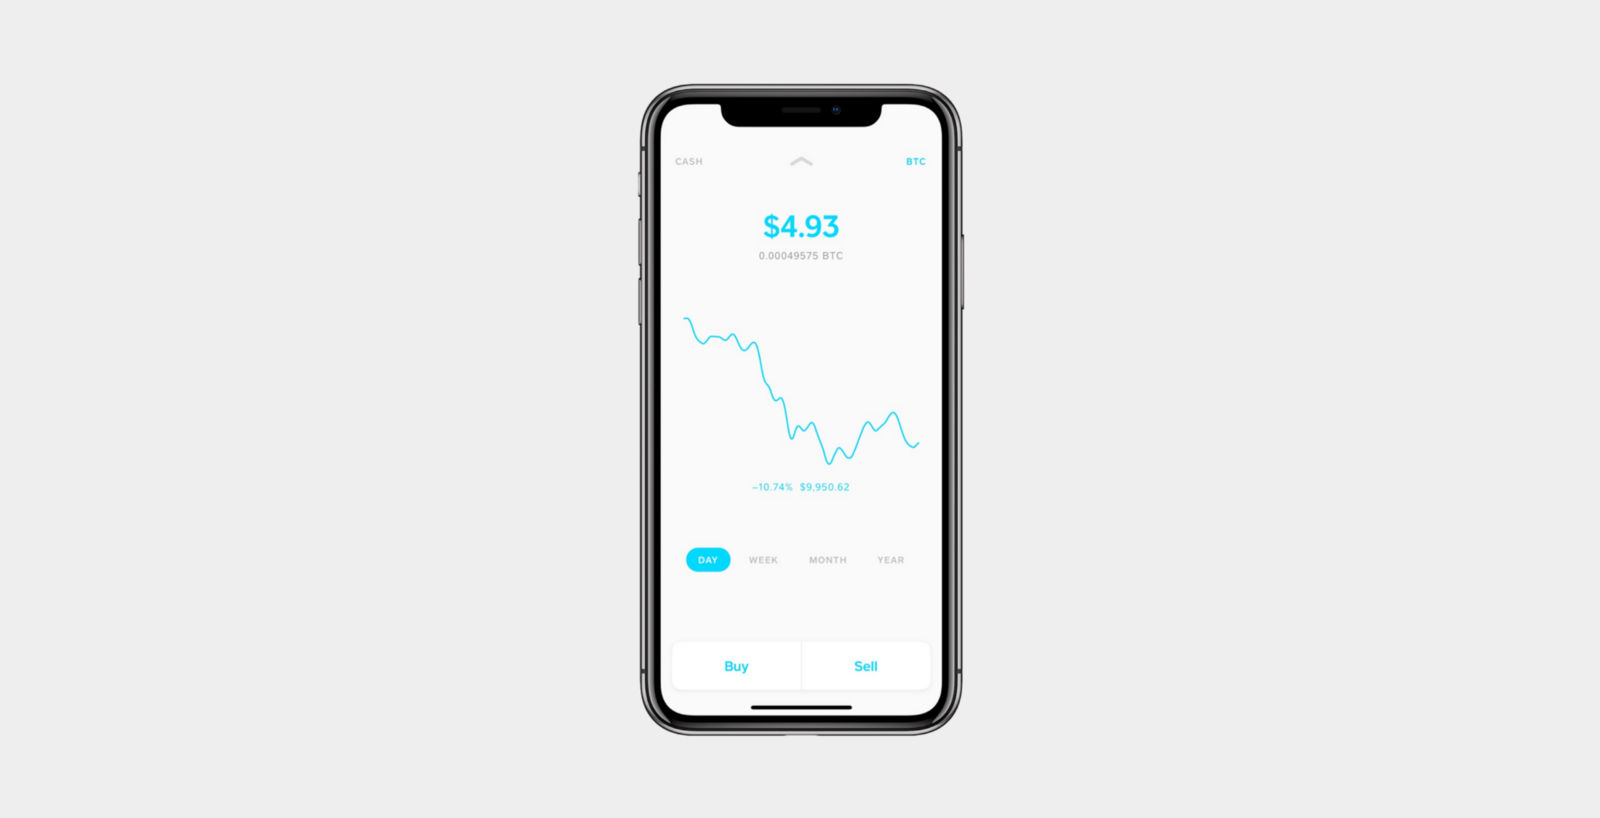 Image of Cashapp Platform on an iphone for buying Bitcoin